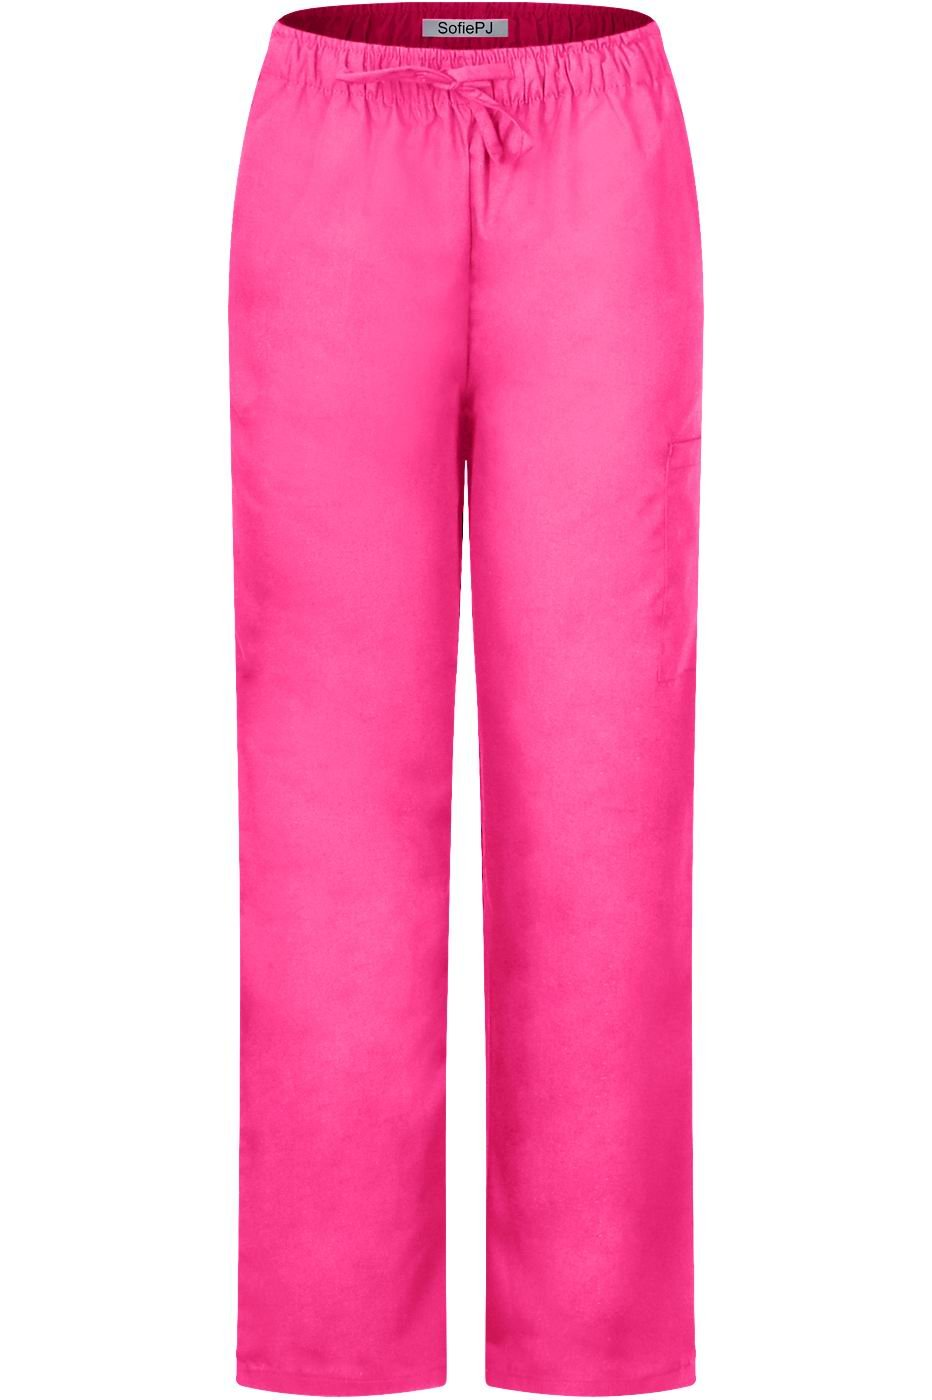 MedPro Women's Medical Scrub Set with Printed Top and Cargo Pants Yellow Pink 2XL(9003-1188GR) by MedPro (Image #4)